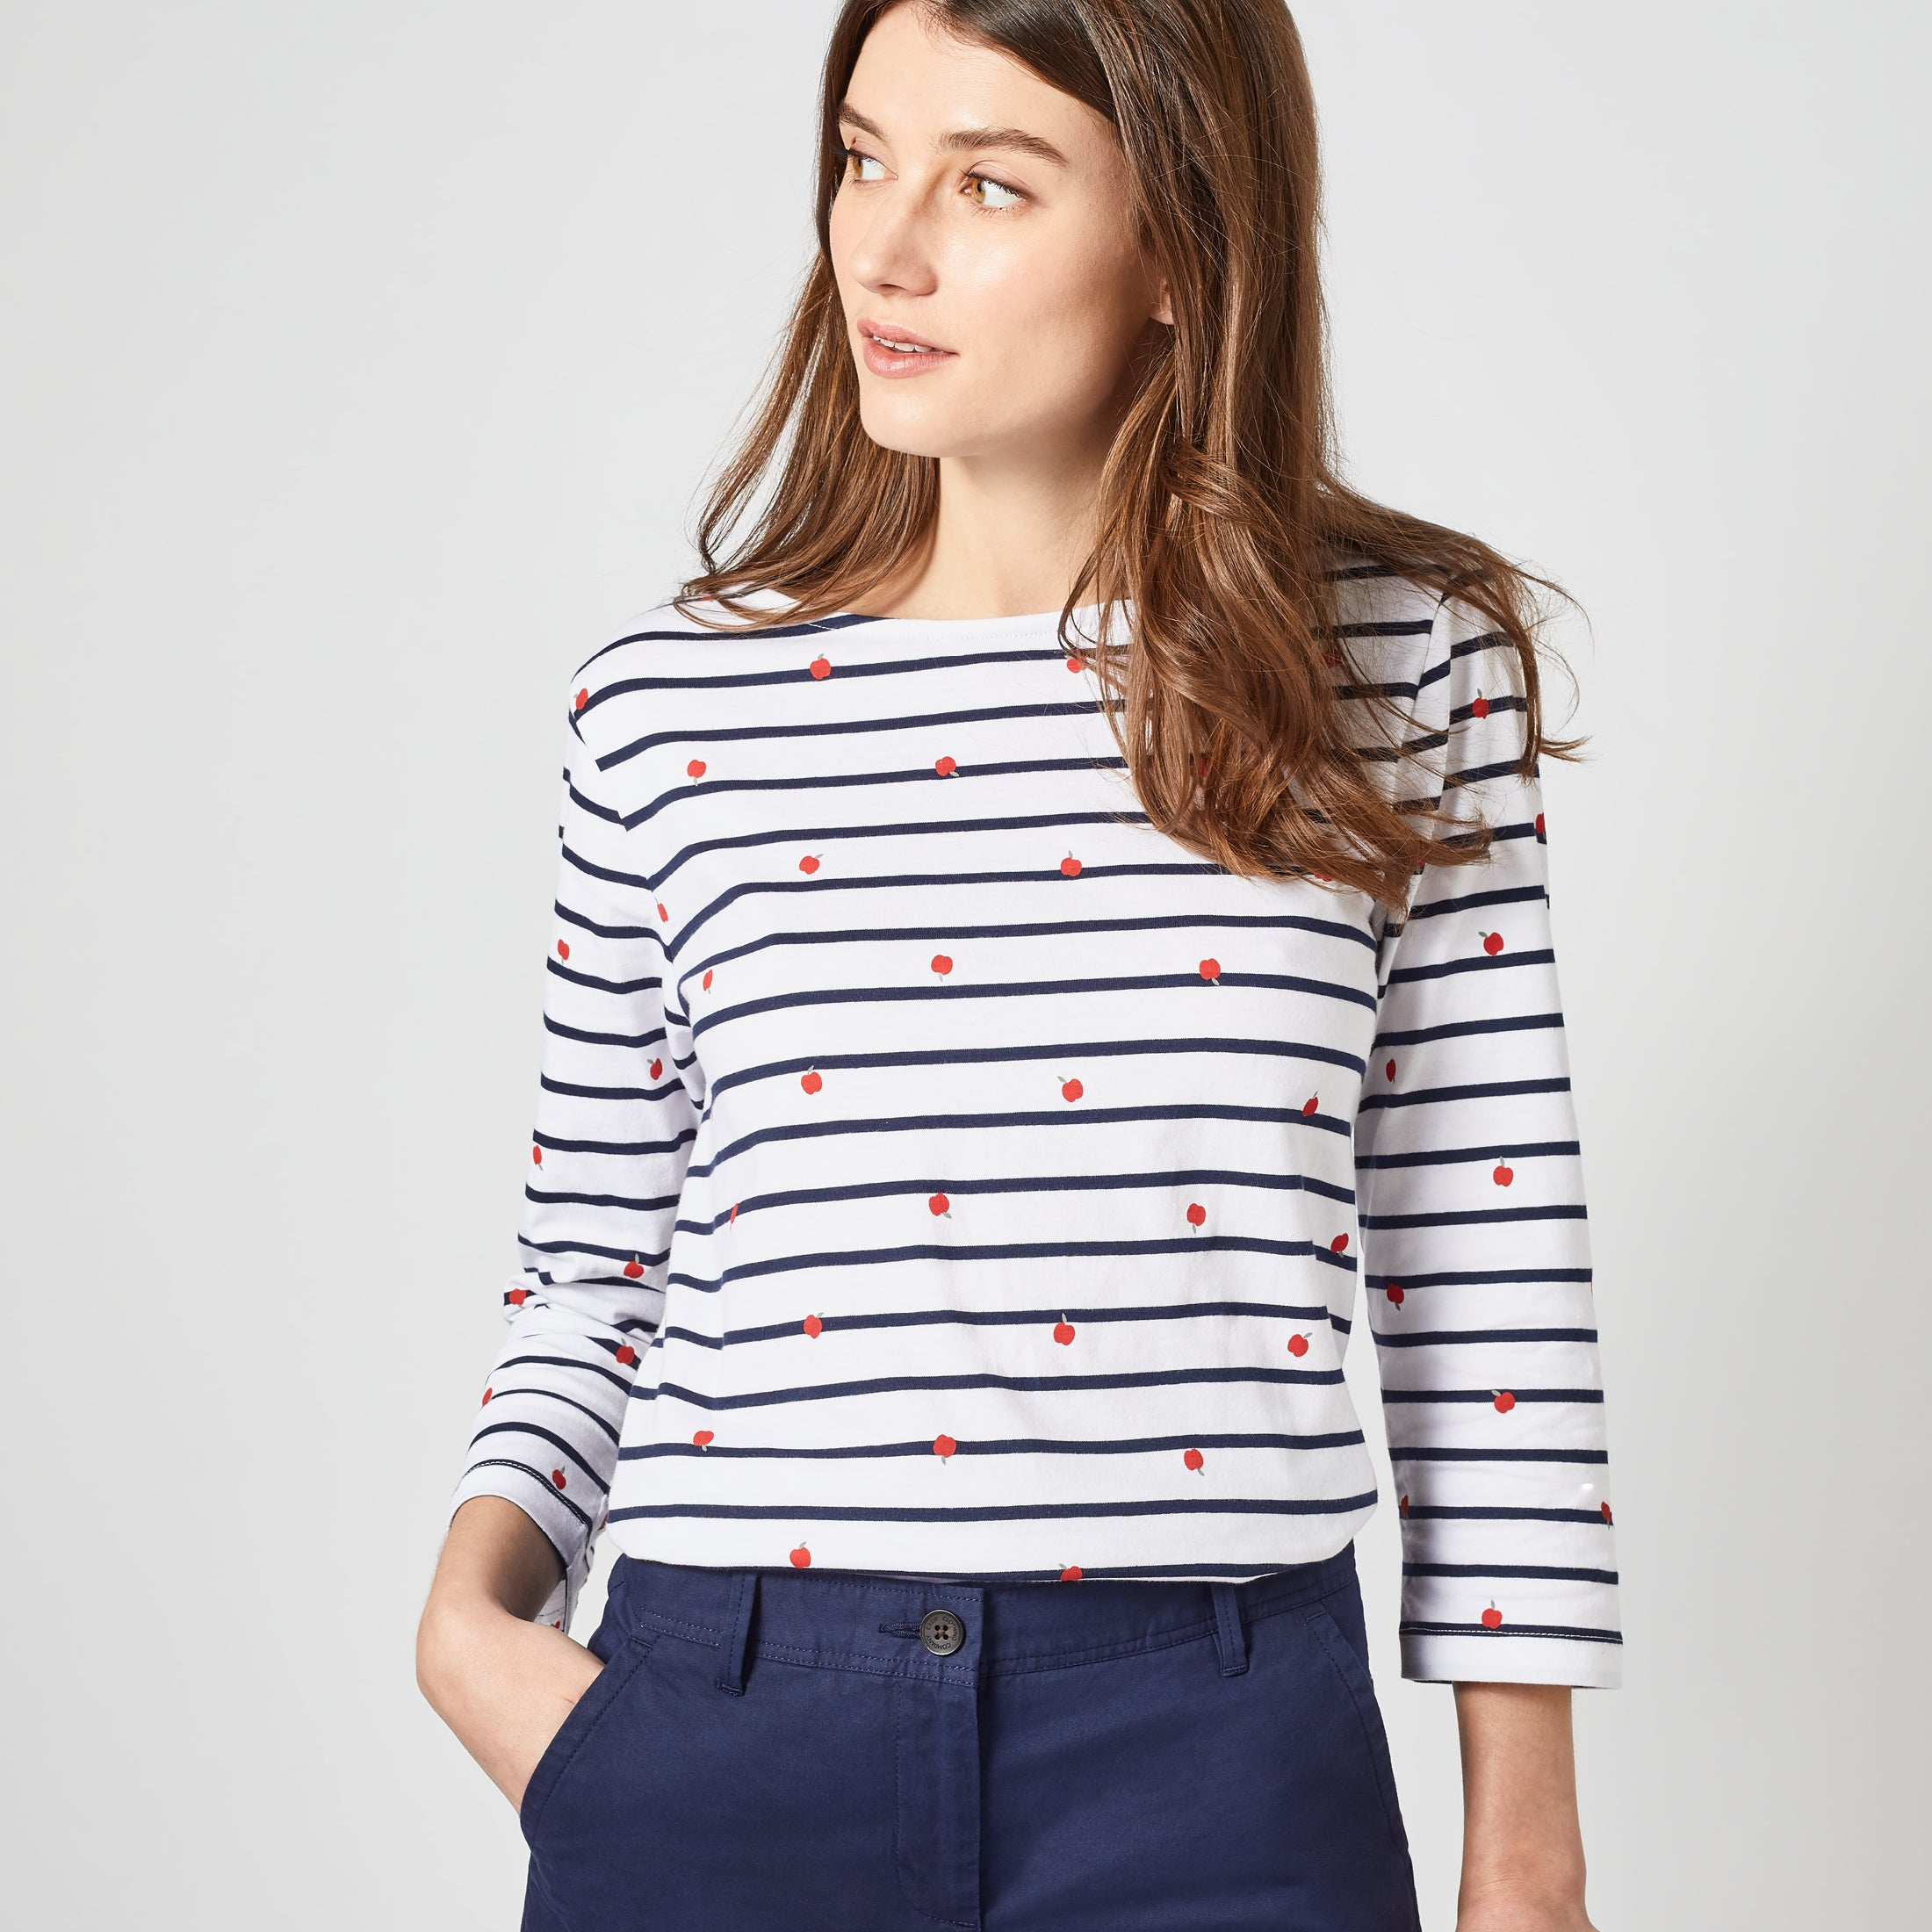 Crew Interest Breton Top for Ladies in Apple Print